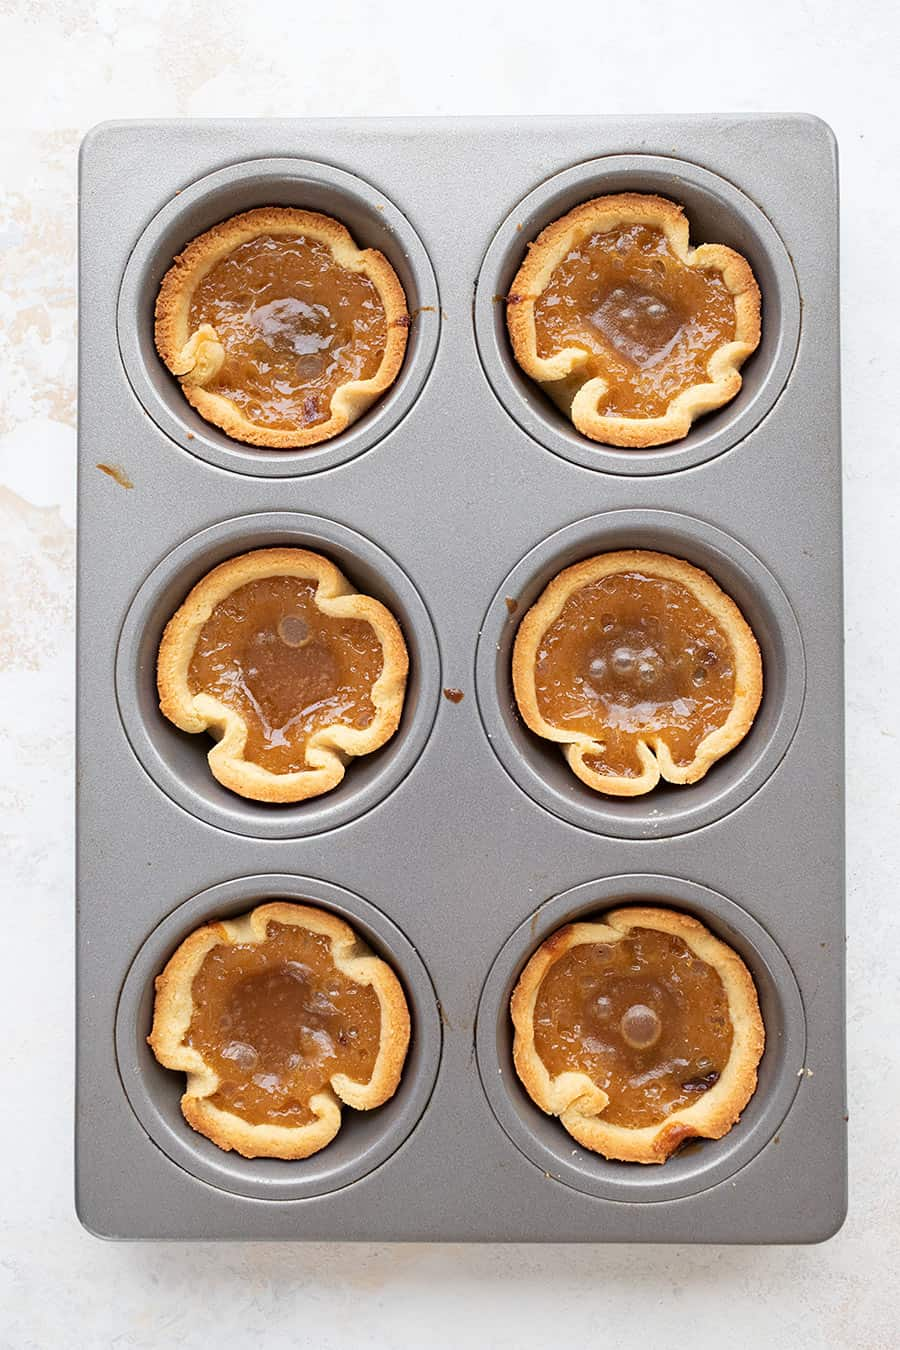 Top down image of keto butter tarts in the baking pan.